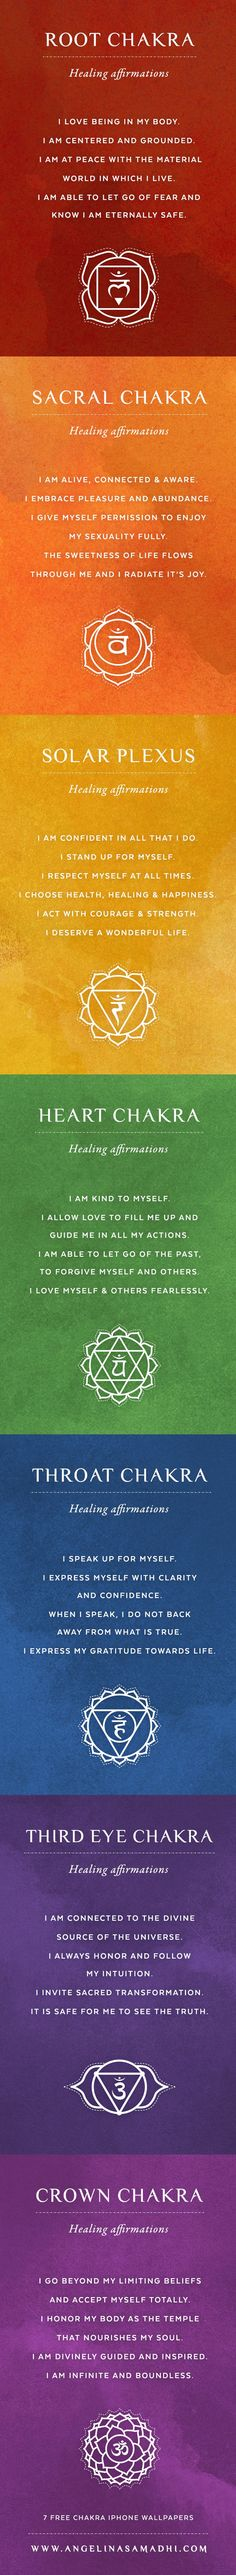 Chakra Affirmation ॐ Align your chakras through the conscious direction of your thoughts